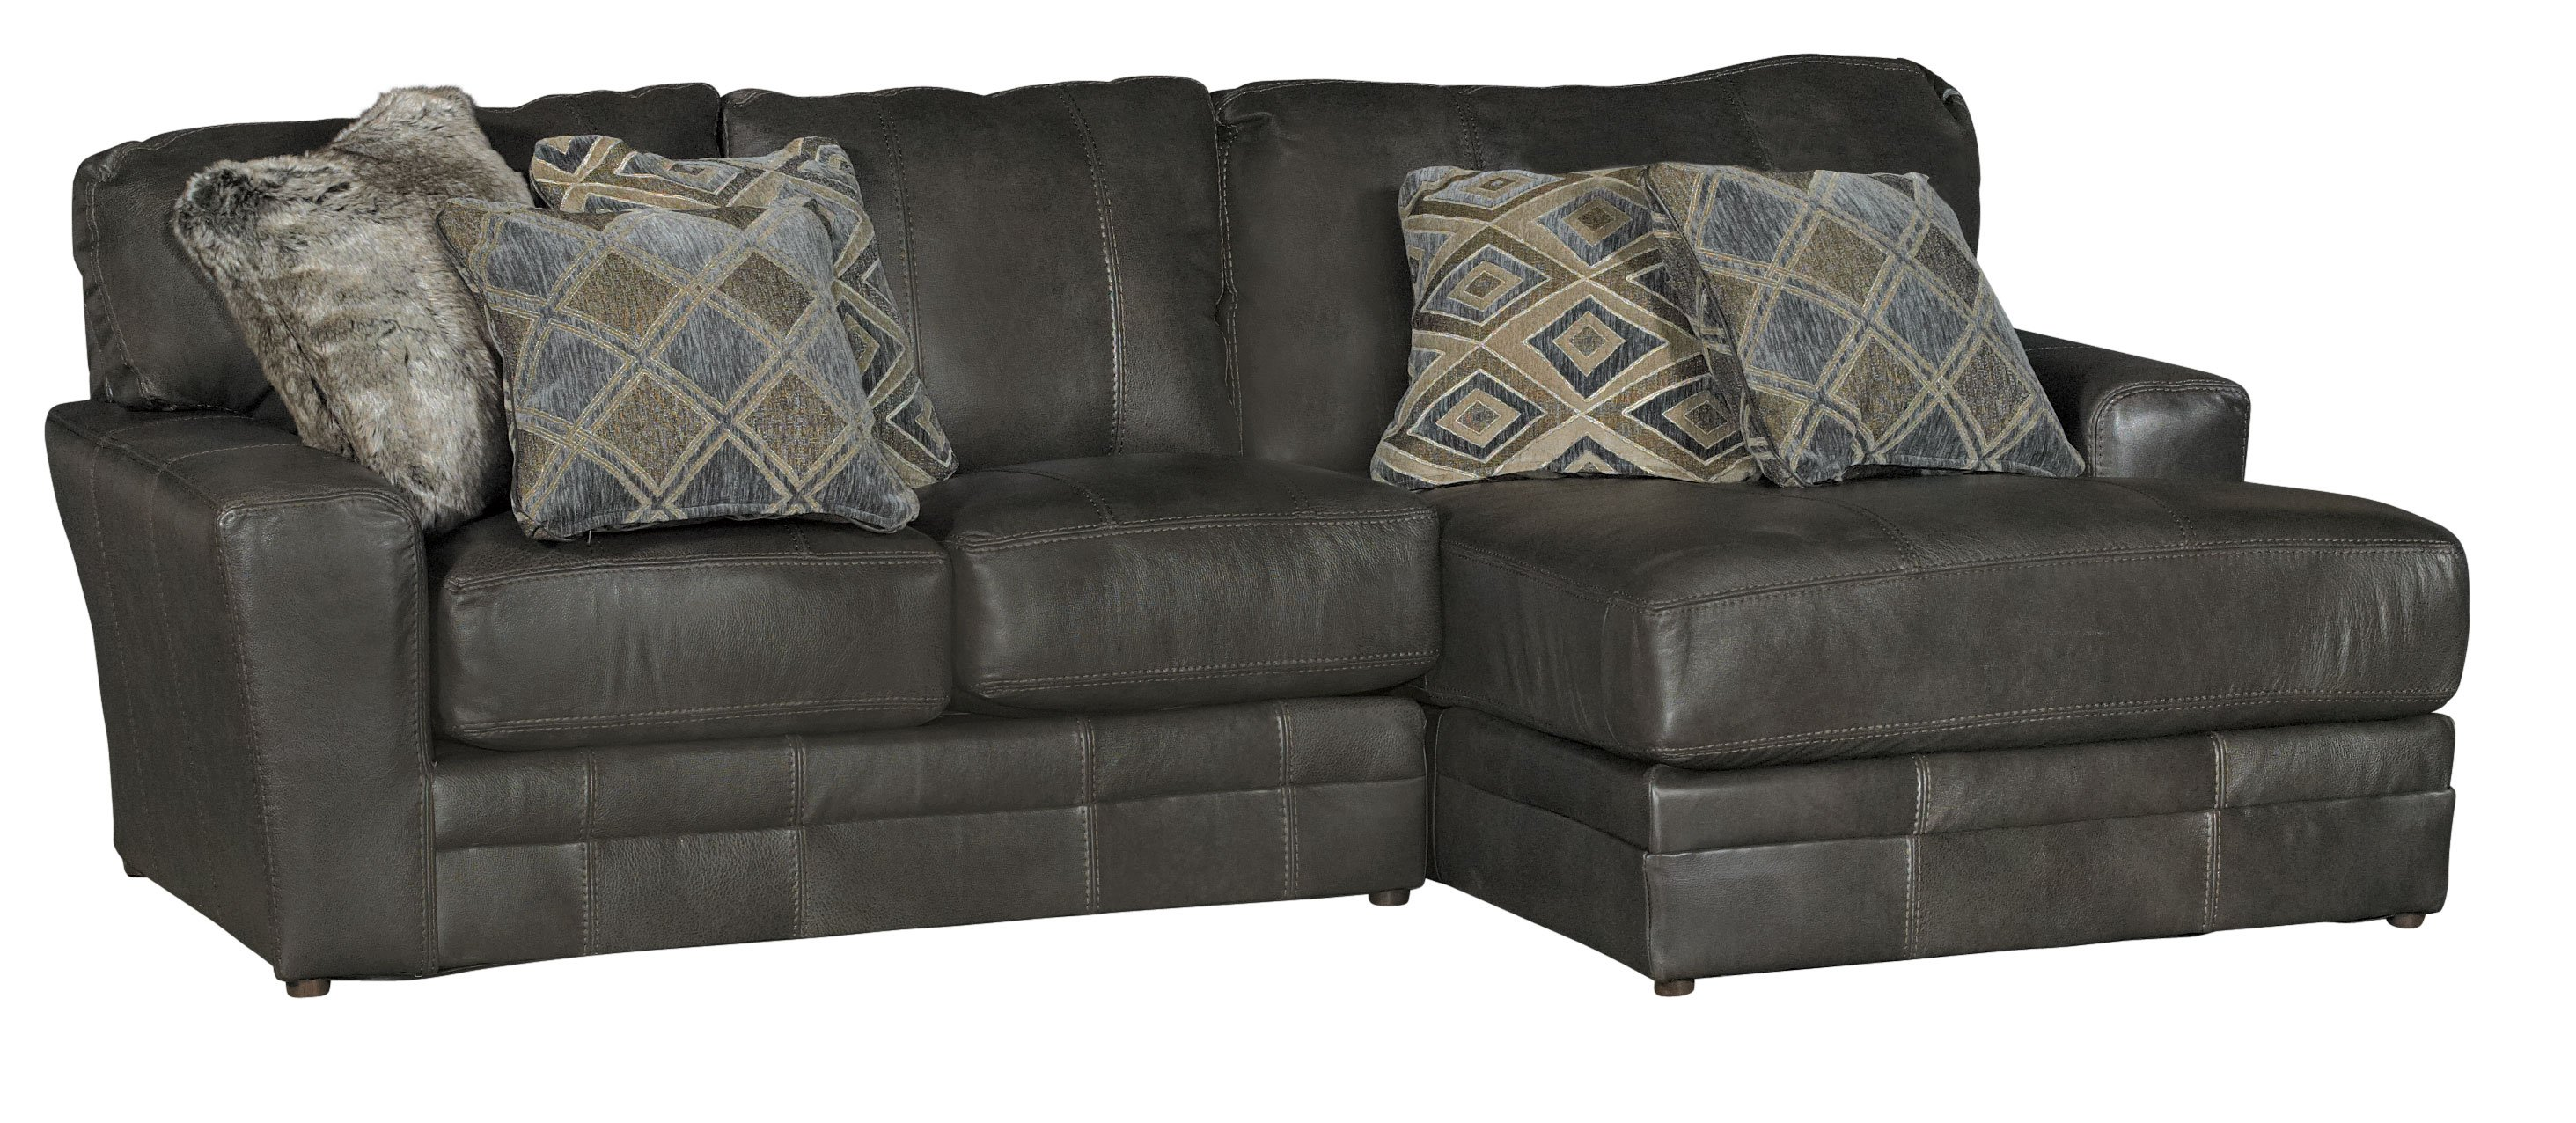 Casual Classic 5 Piece Steel Gray Leather Match Sectional